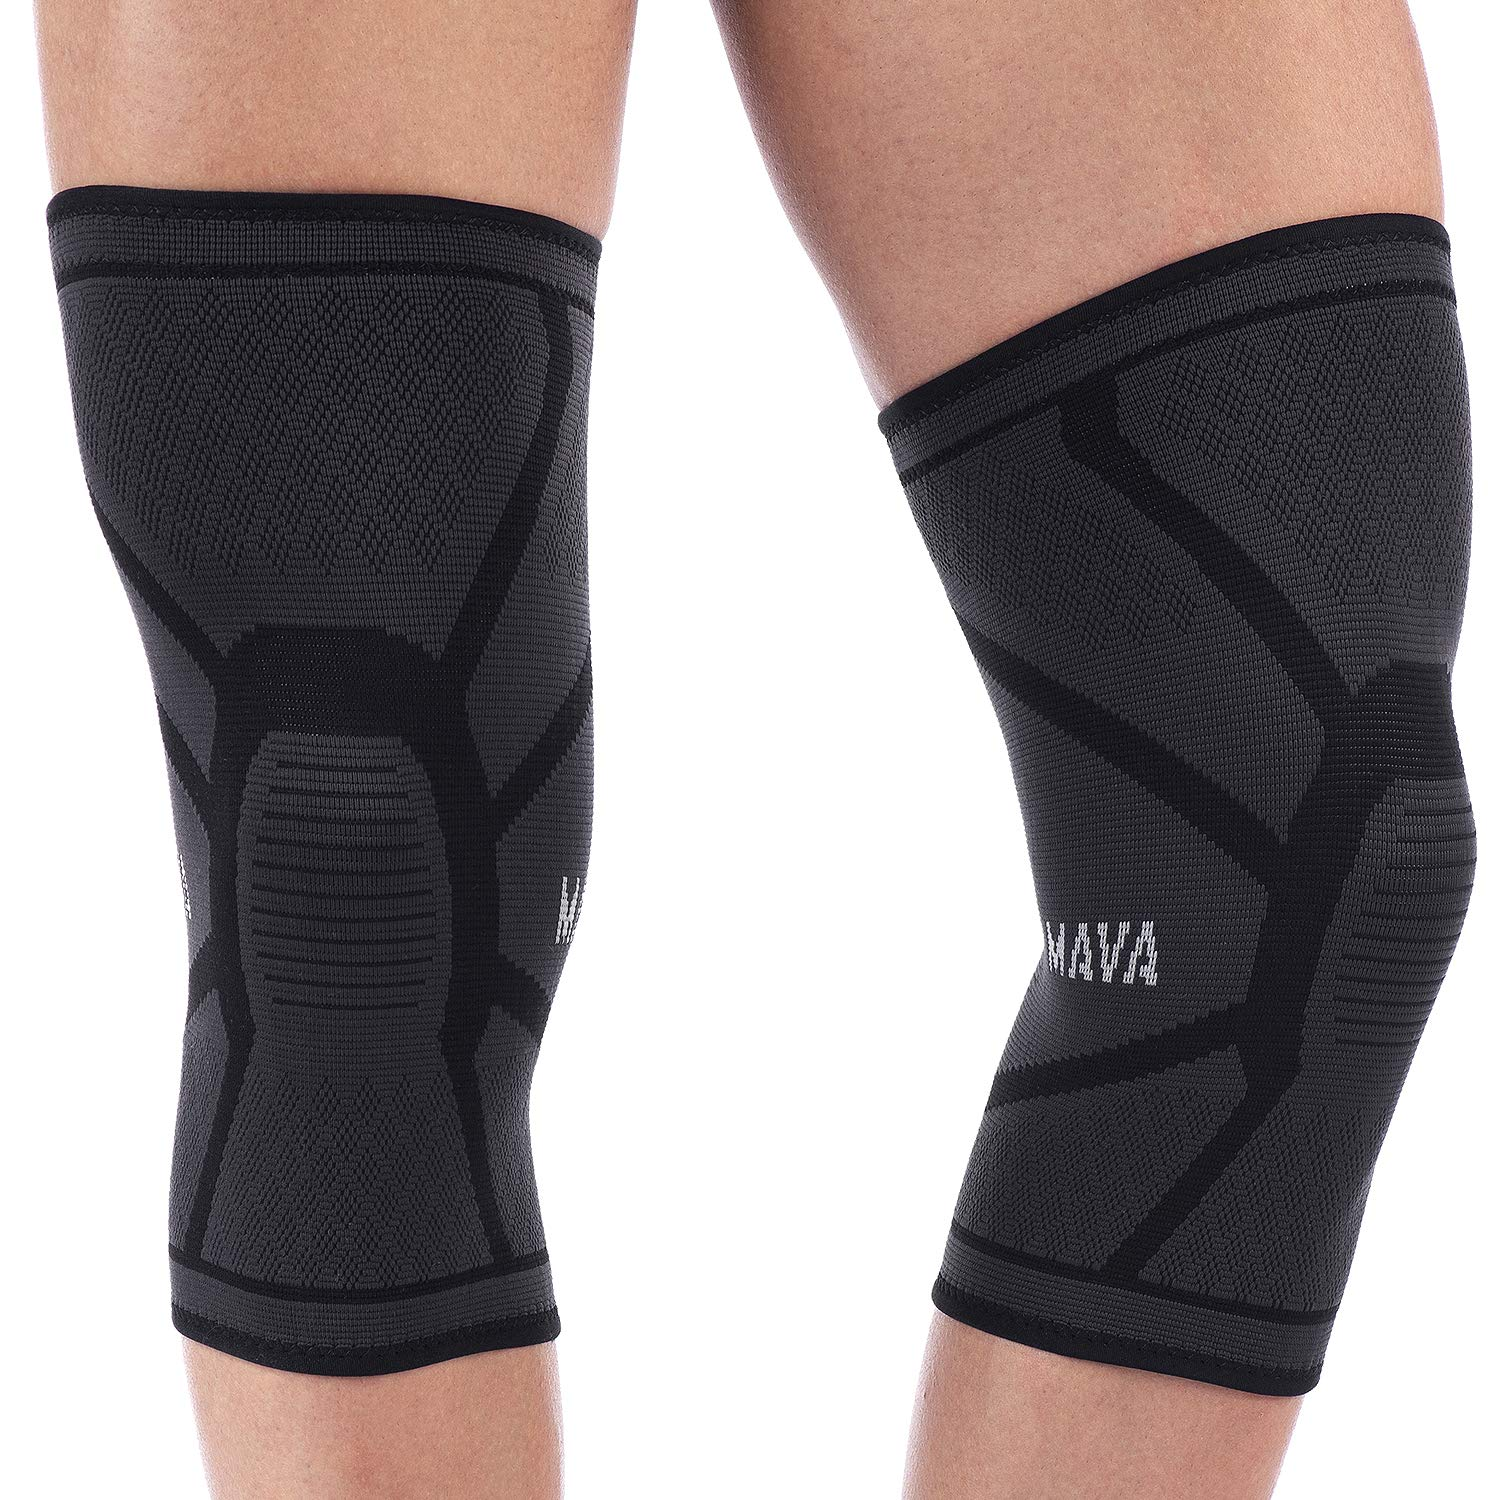 23d9f2a609 Amazon.com: Mava Sports Knee Support Compression Sleeve (All Black, Small):  Sports & Outdoors